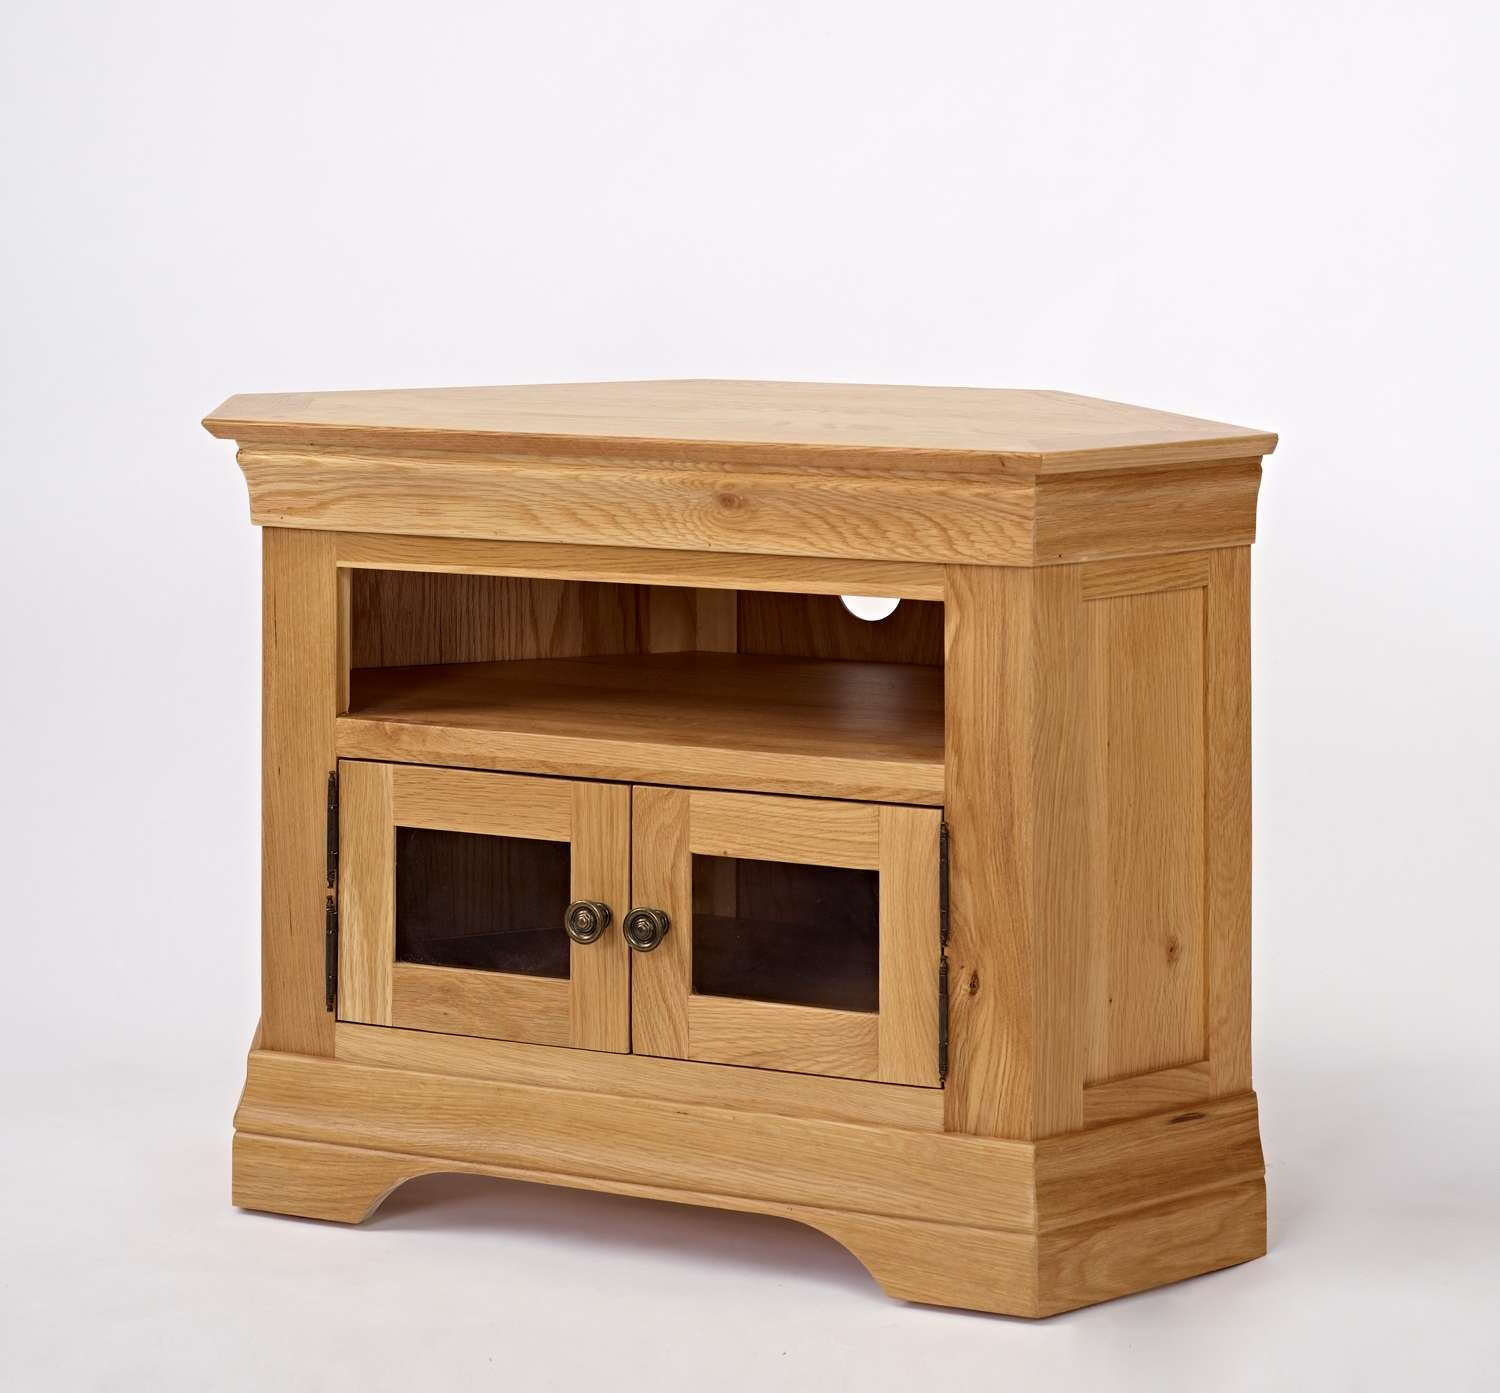 Furniture Oak Wood Media Cabinet With Open Shelf And Storage Solid Regarding Small Oak Corner Tv Stands (View 8 of 15)